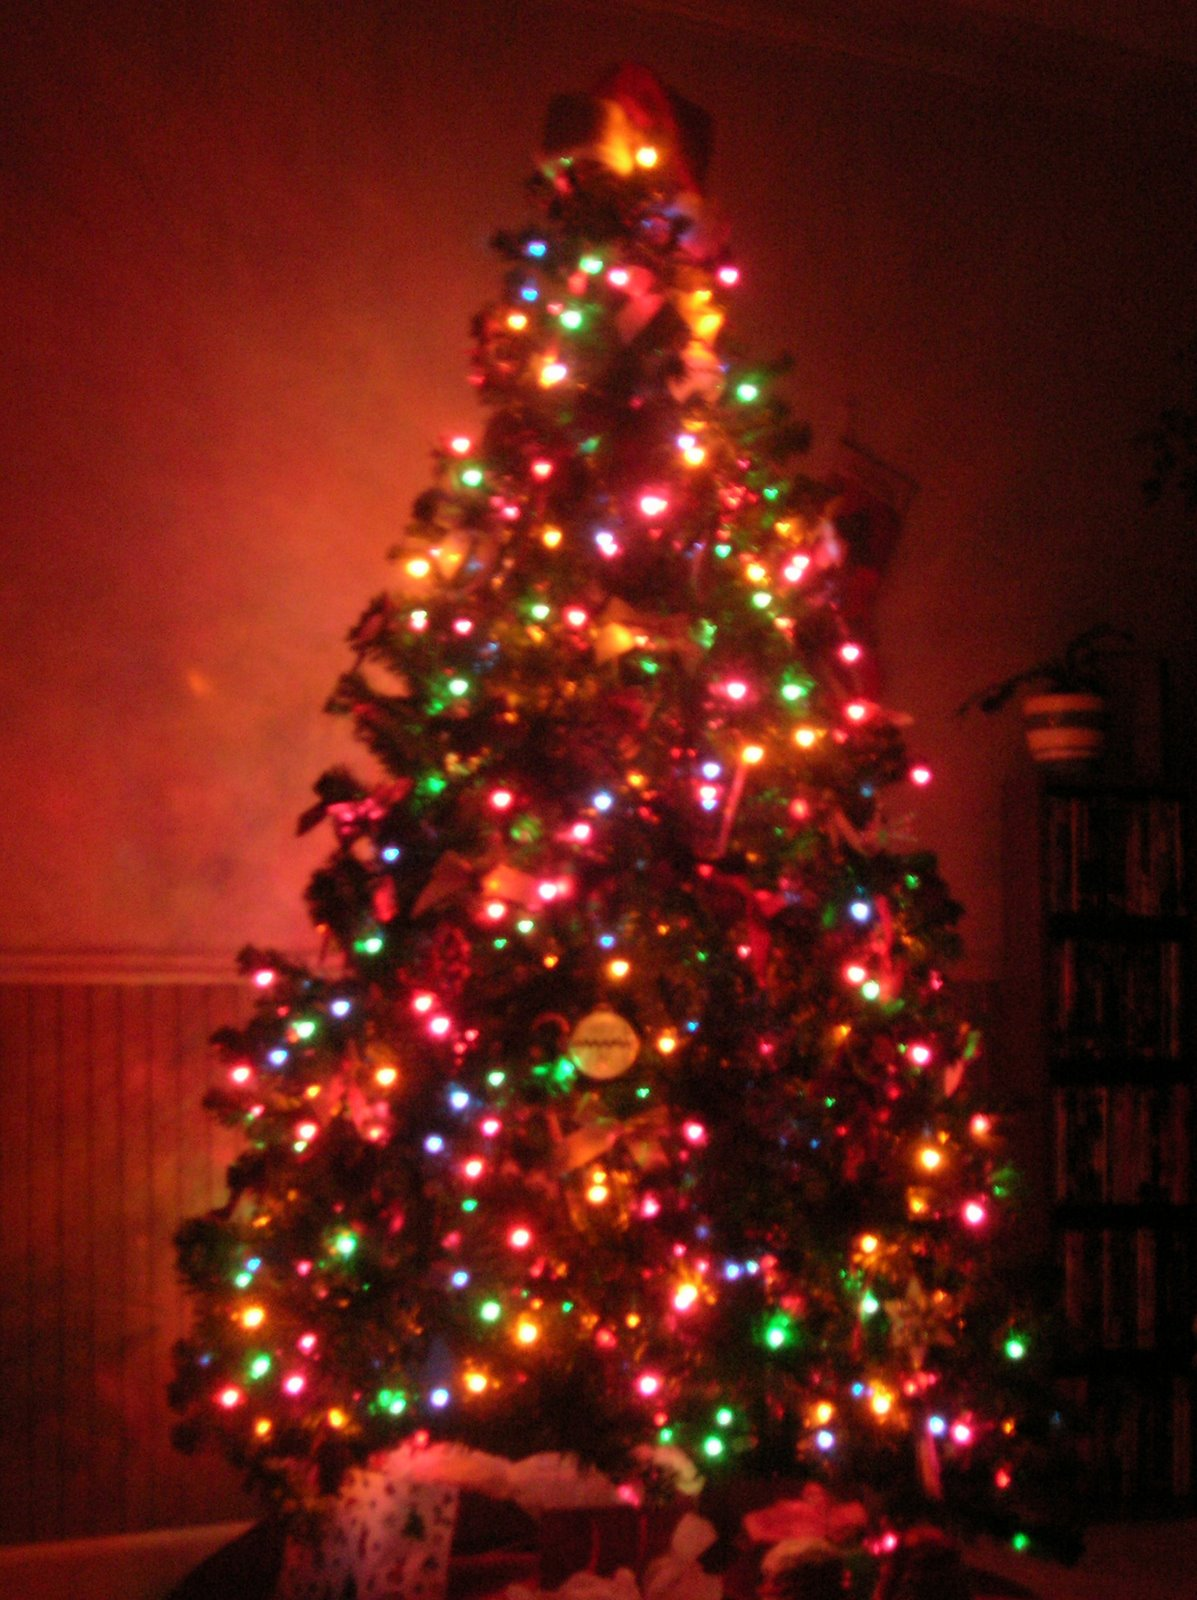 Beautiful Christmas Tree Lights Colorful Christmas Tree Lights 1197x1600 Wallpaper Teahub Io